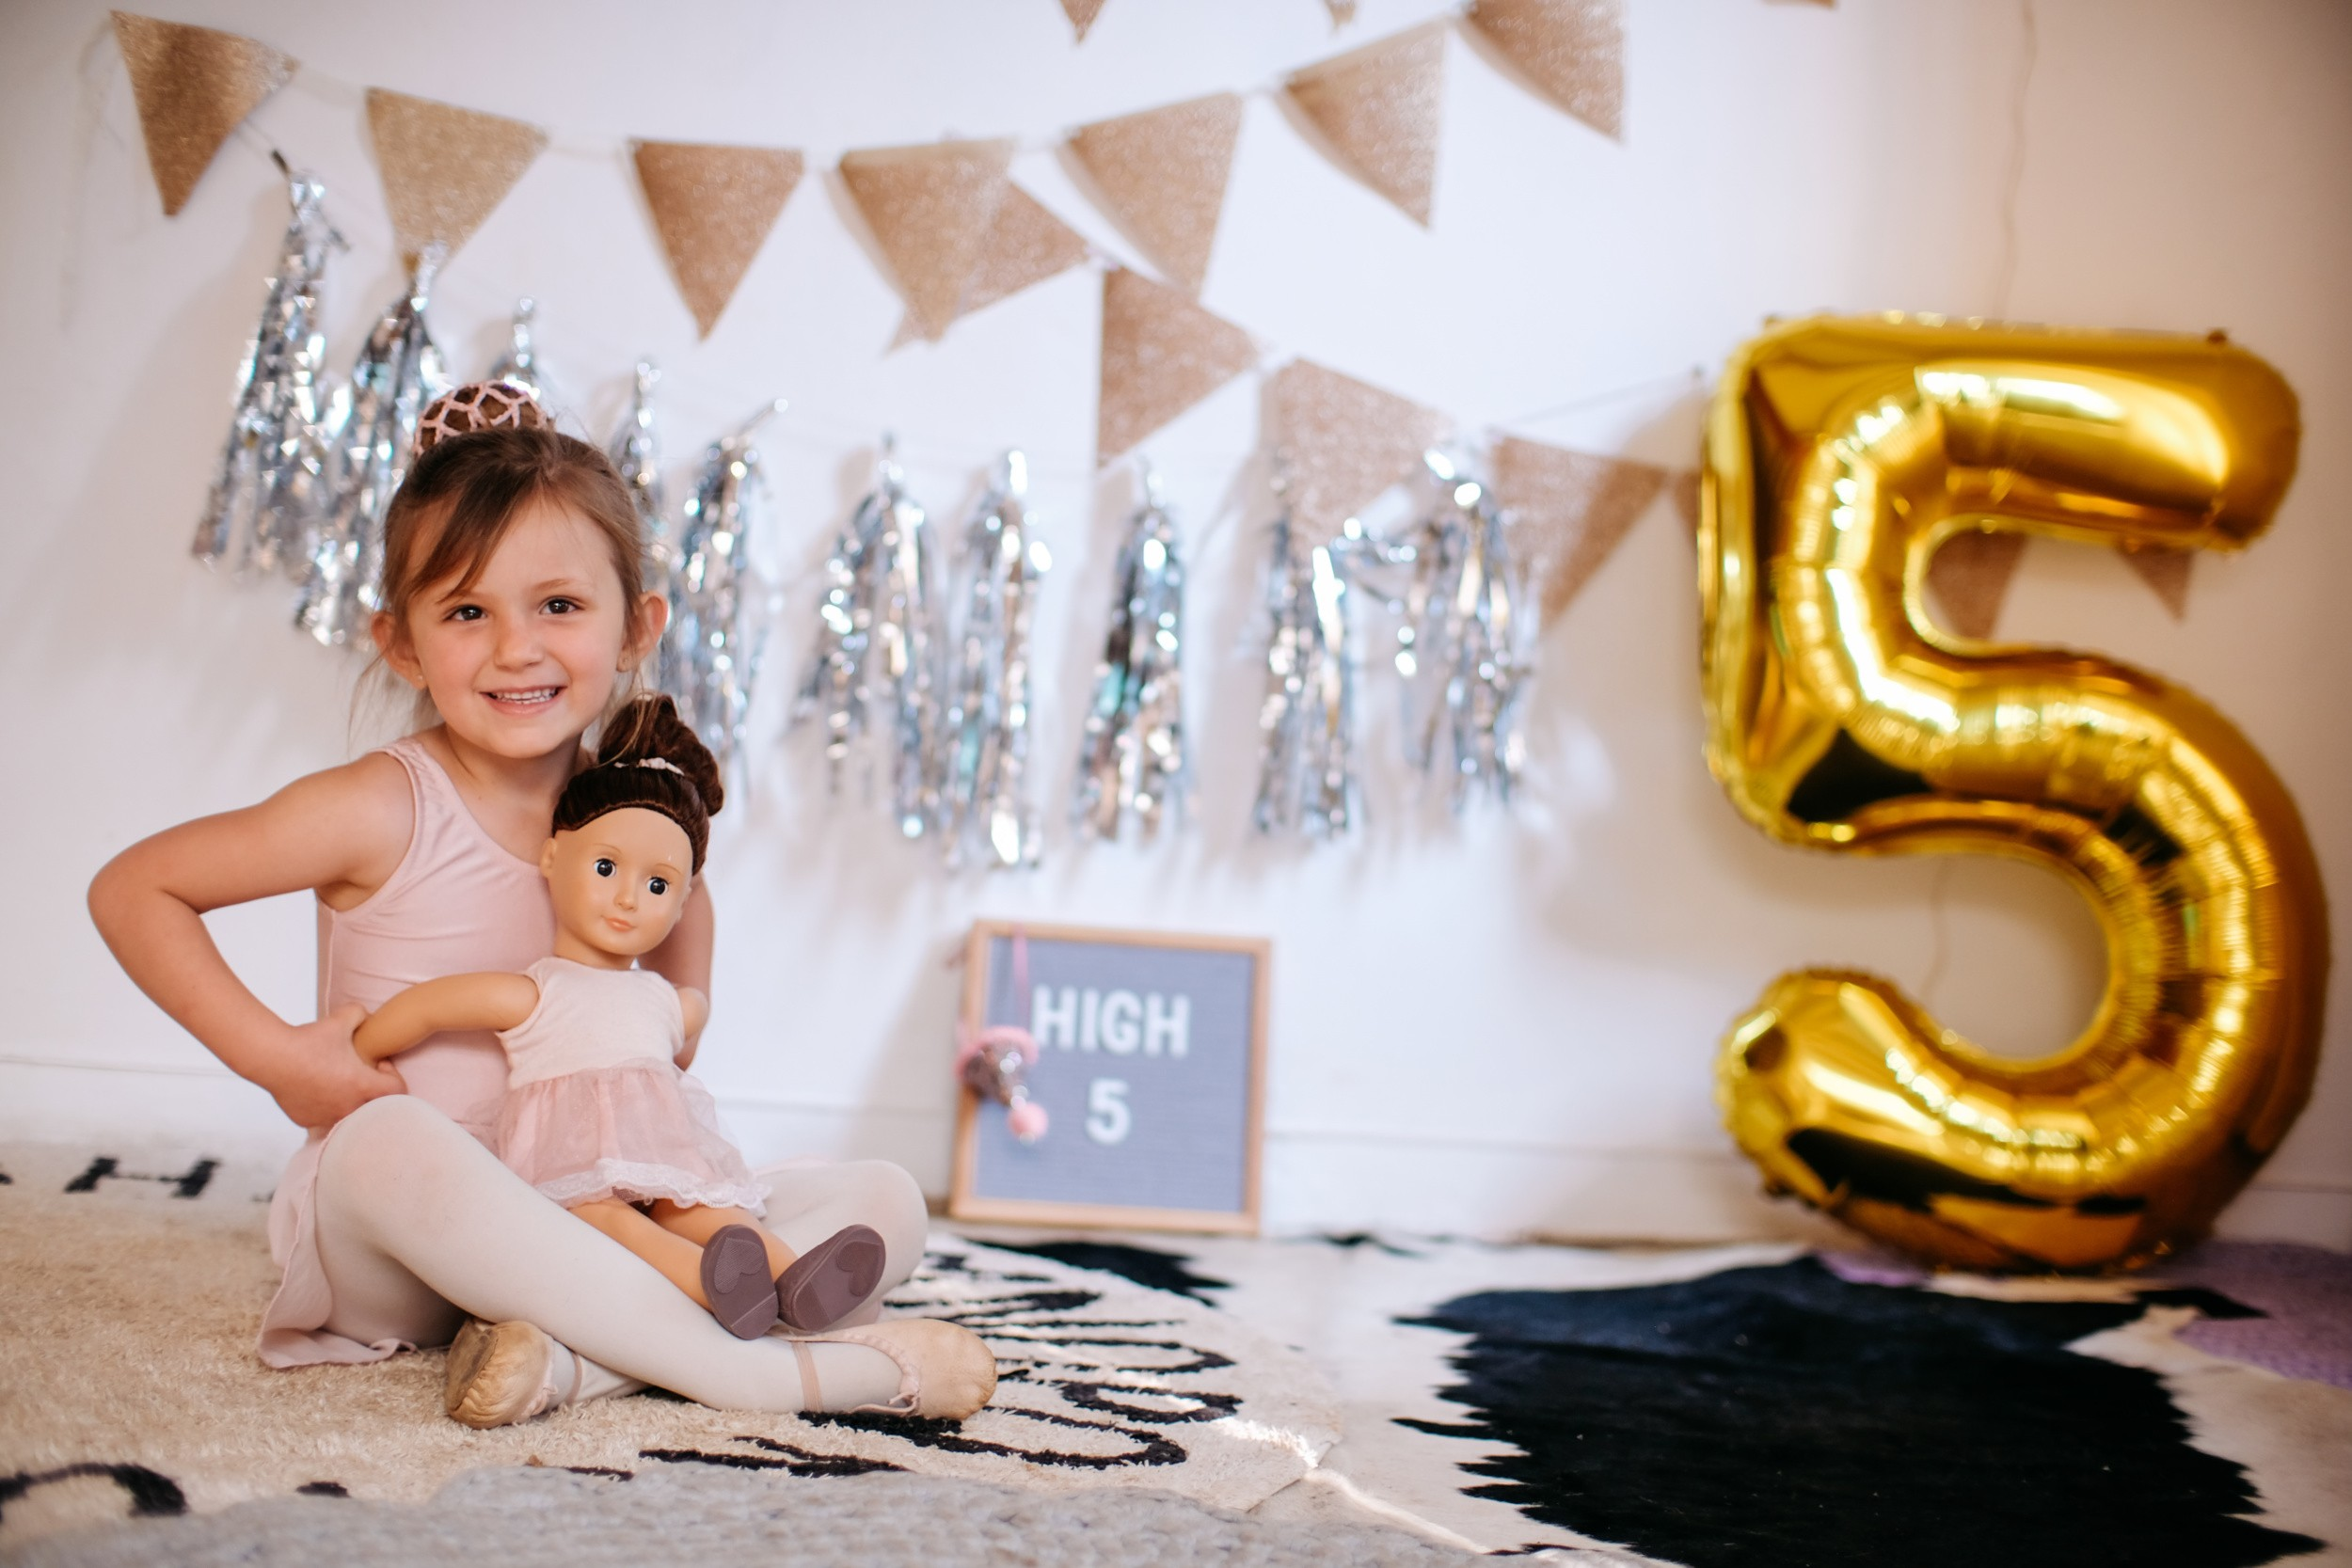 Ideas For A 5th Birthday Party